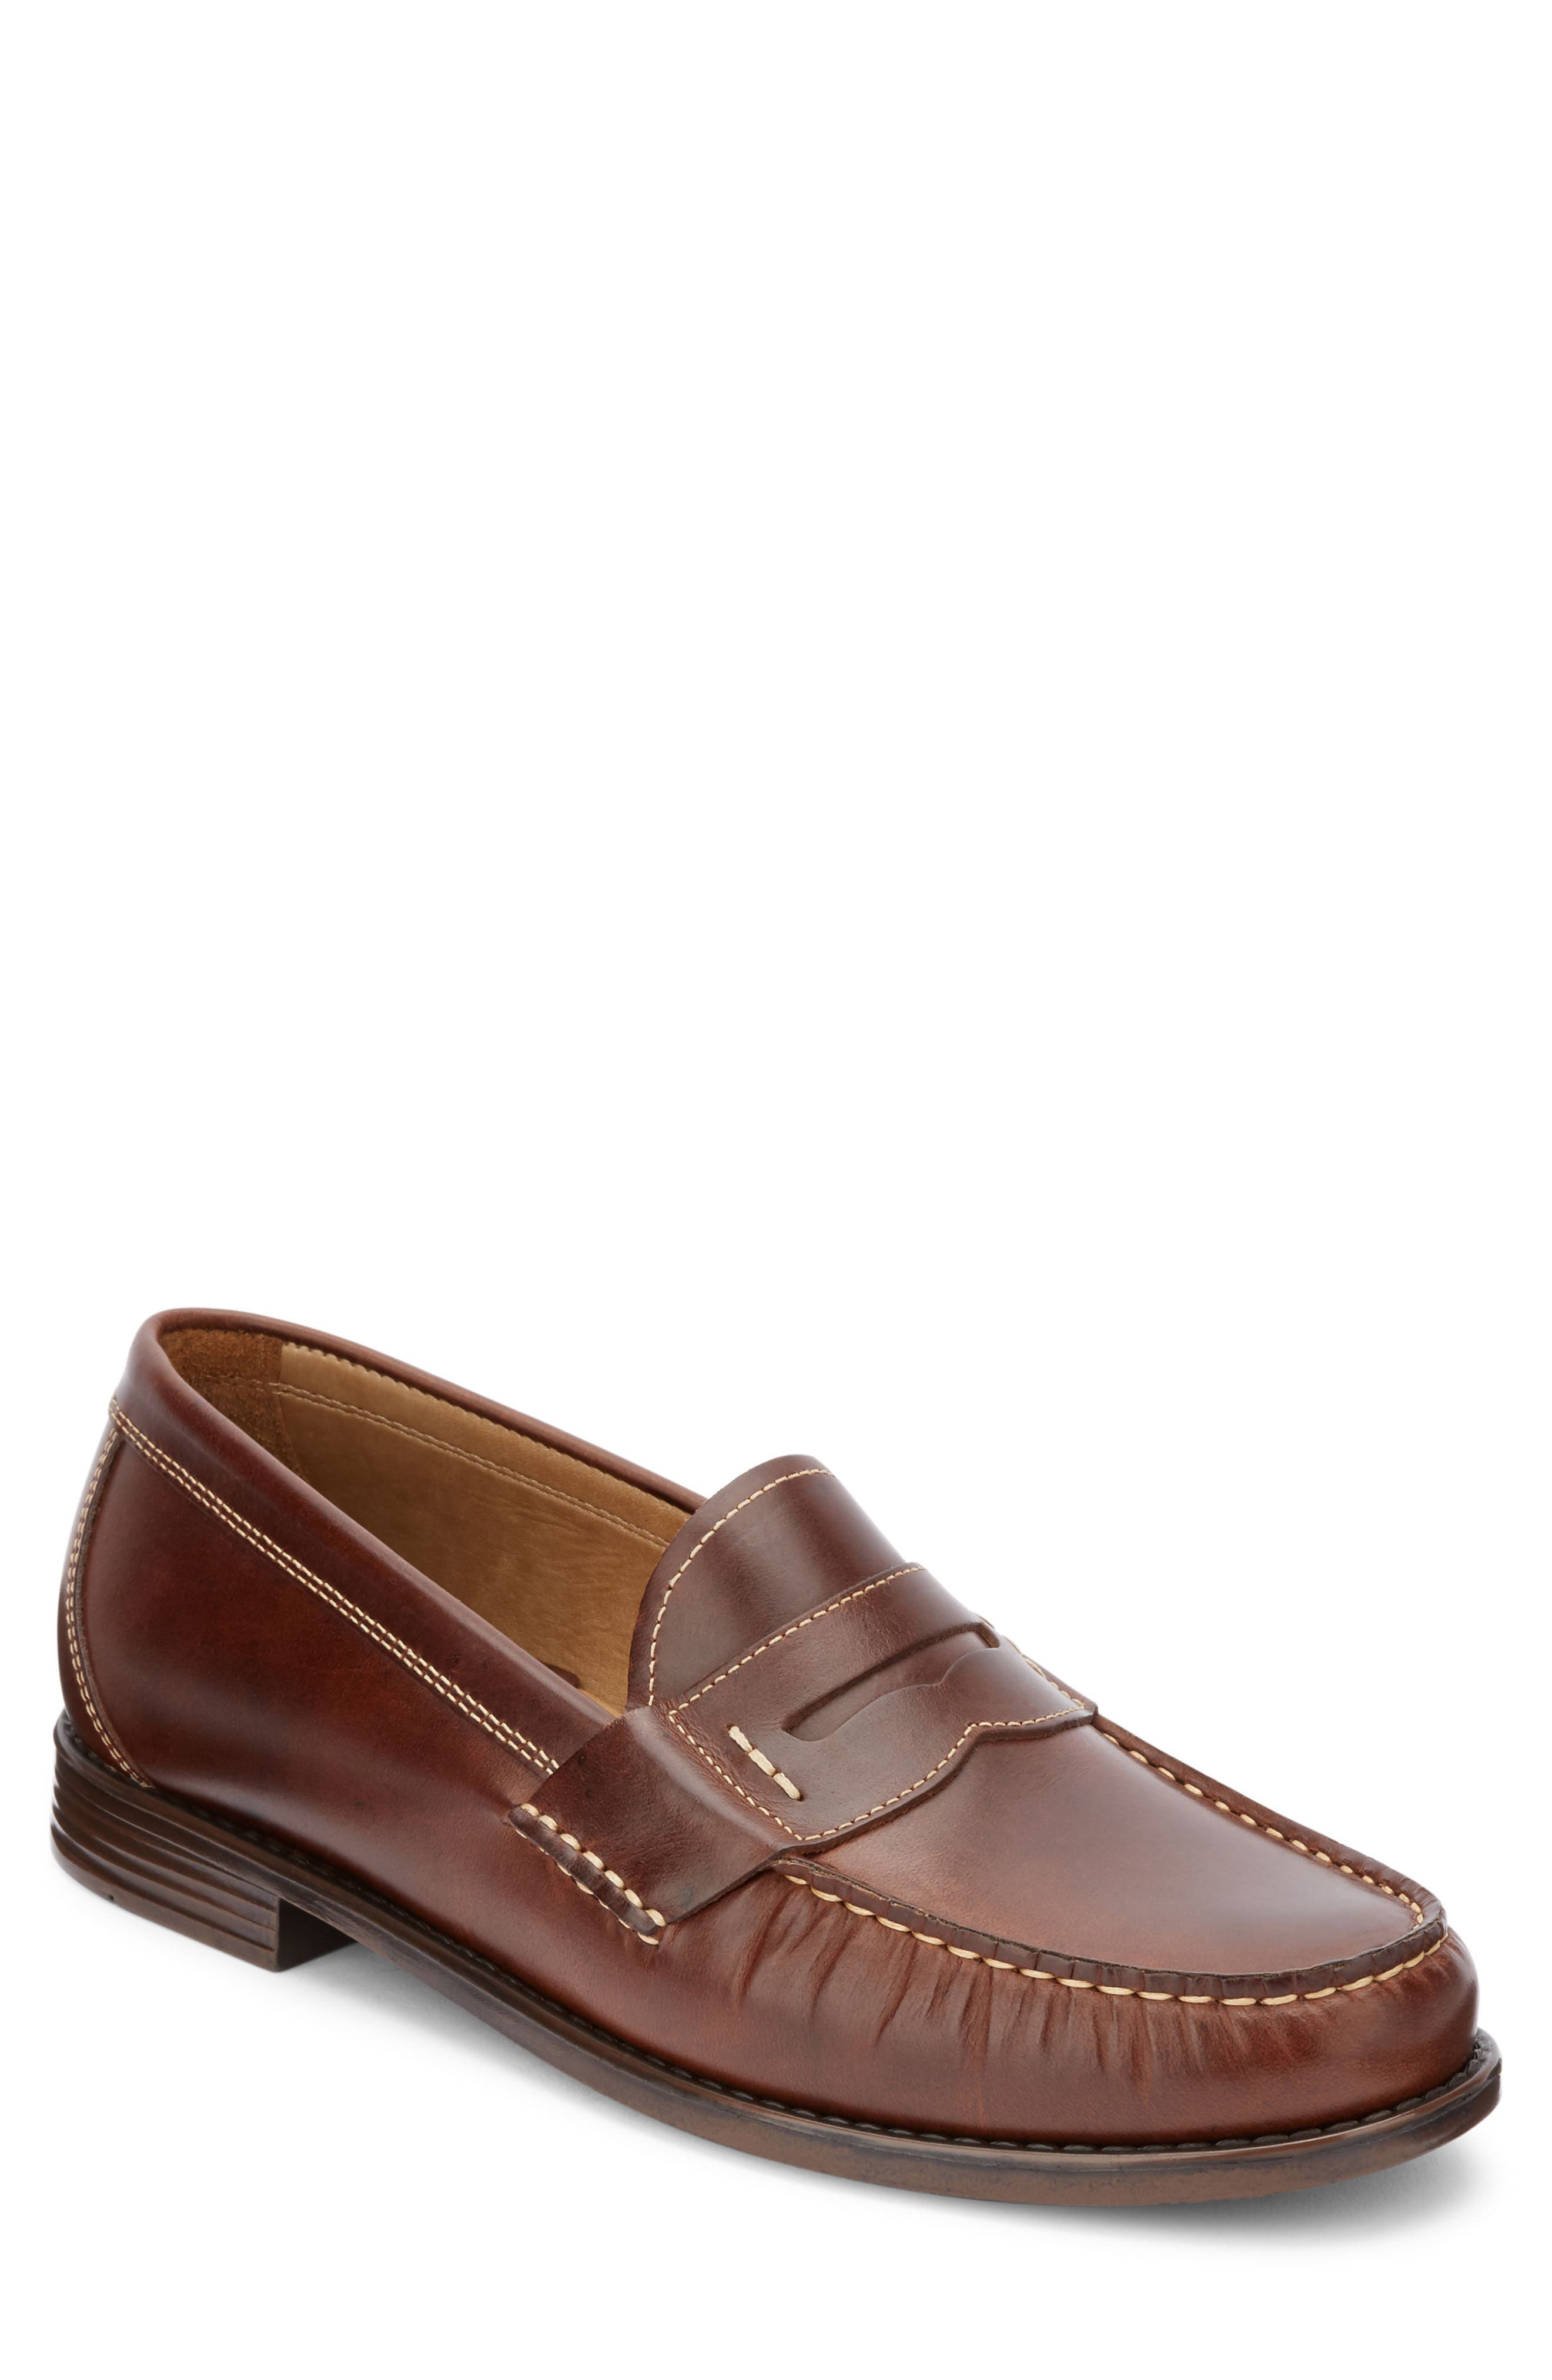 Wagner Penny Loafer,                         Main,                         color, DARK BROWN LEATHER